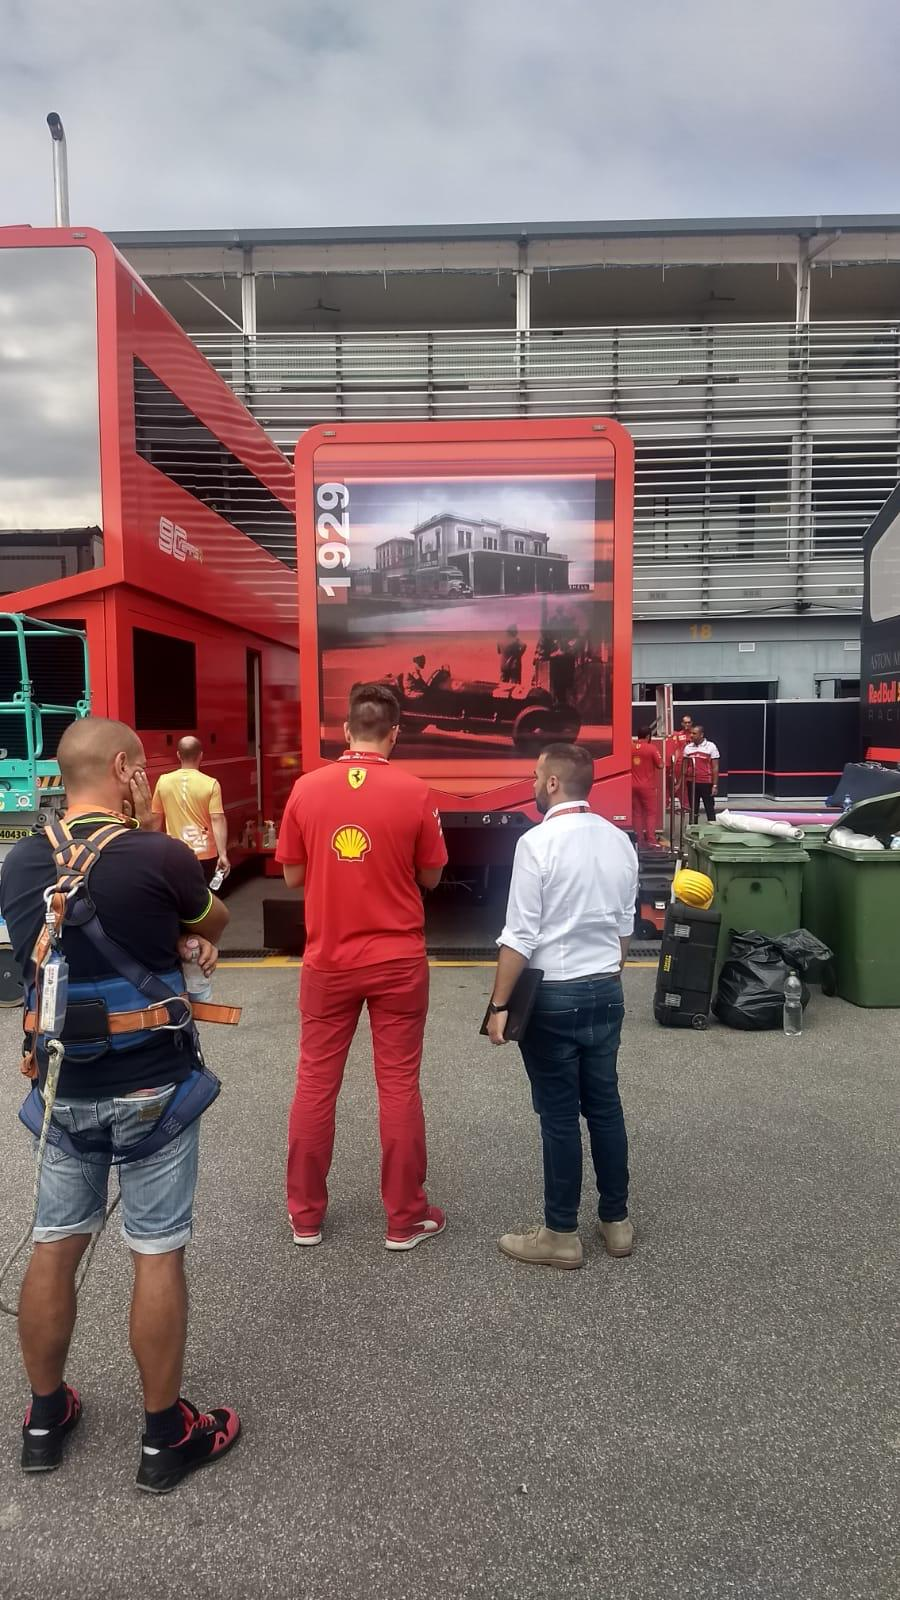 In pictures: new graphics displayed at Ferrari in Monza